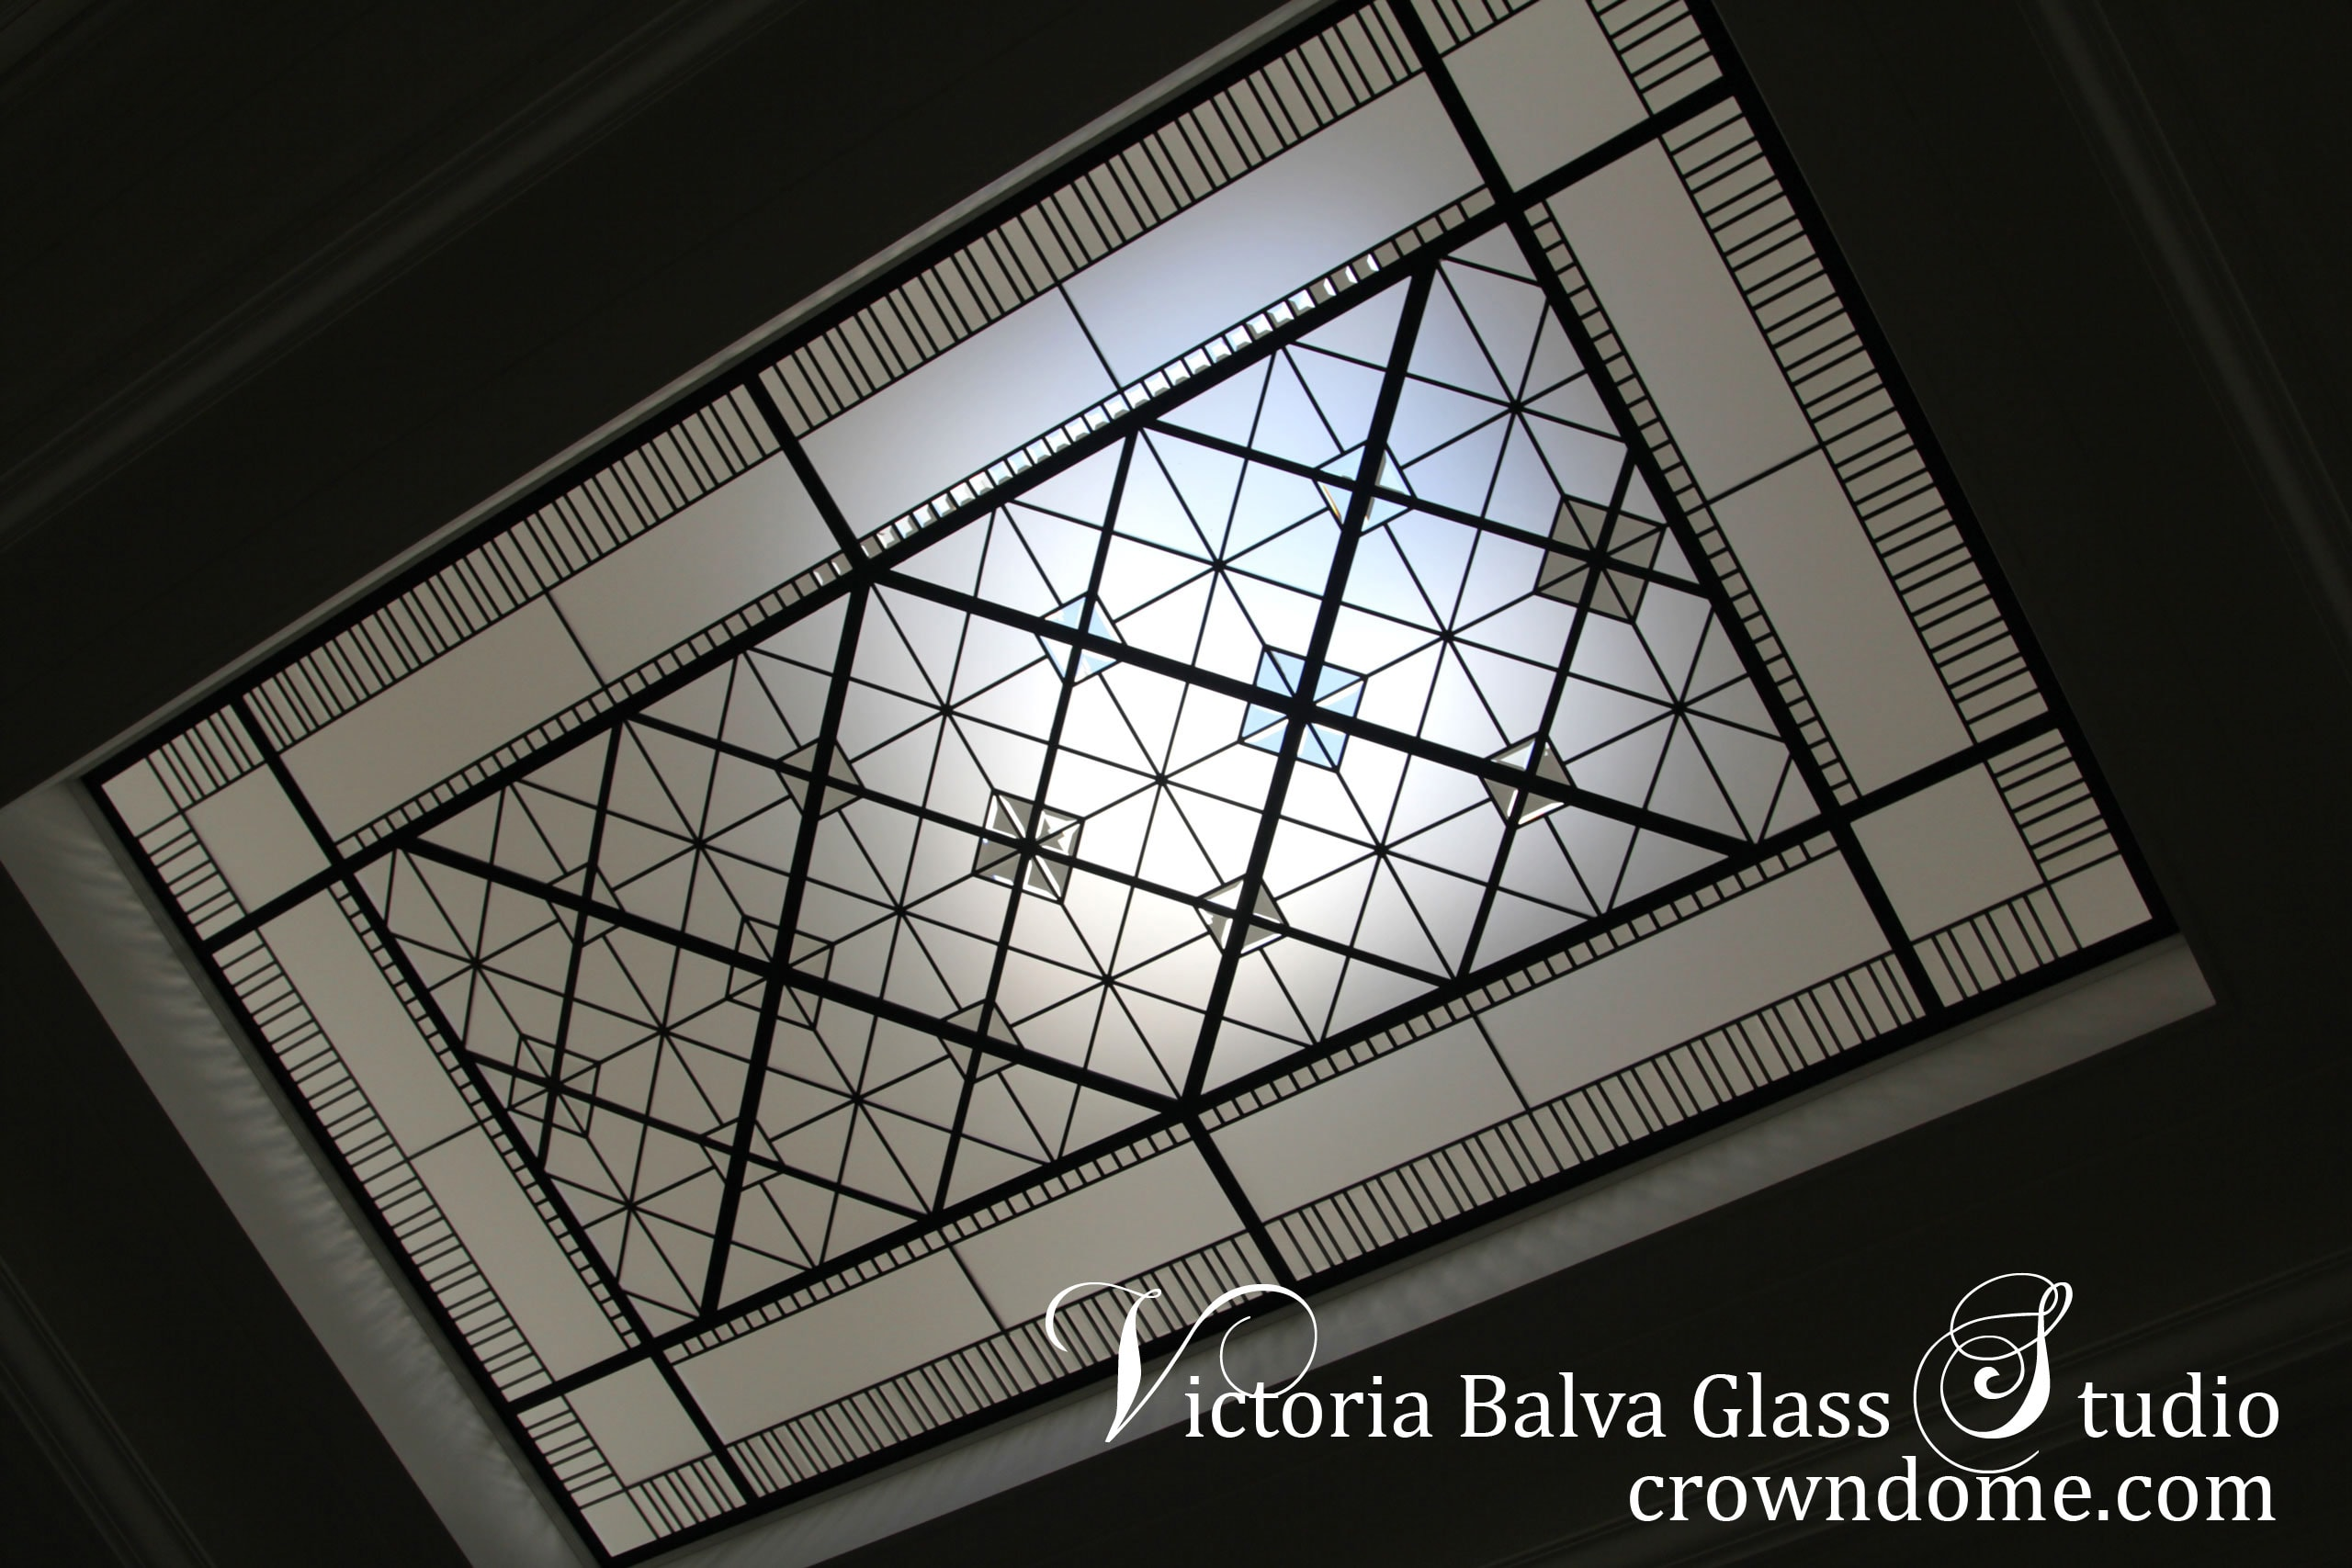 Geometric colorless leaded glass skylight ceiling design in simple geometric style with clear textured glass and clear beveled glass for a stairwell of custom built residence in Toronto. Original design by glass artist Victoria Balva